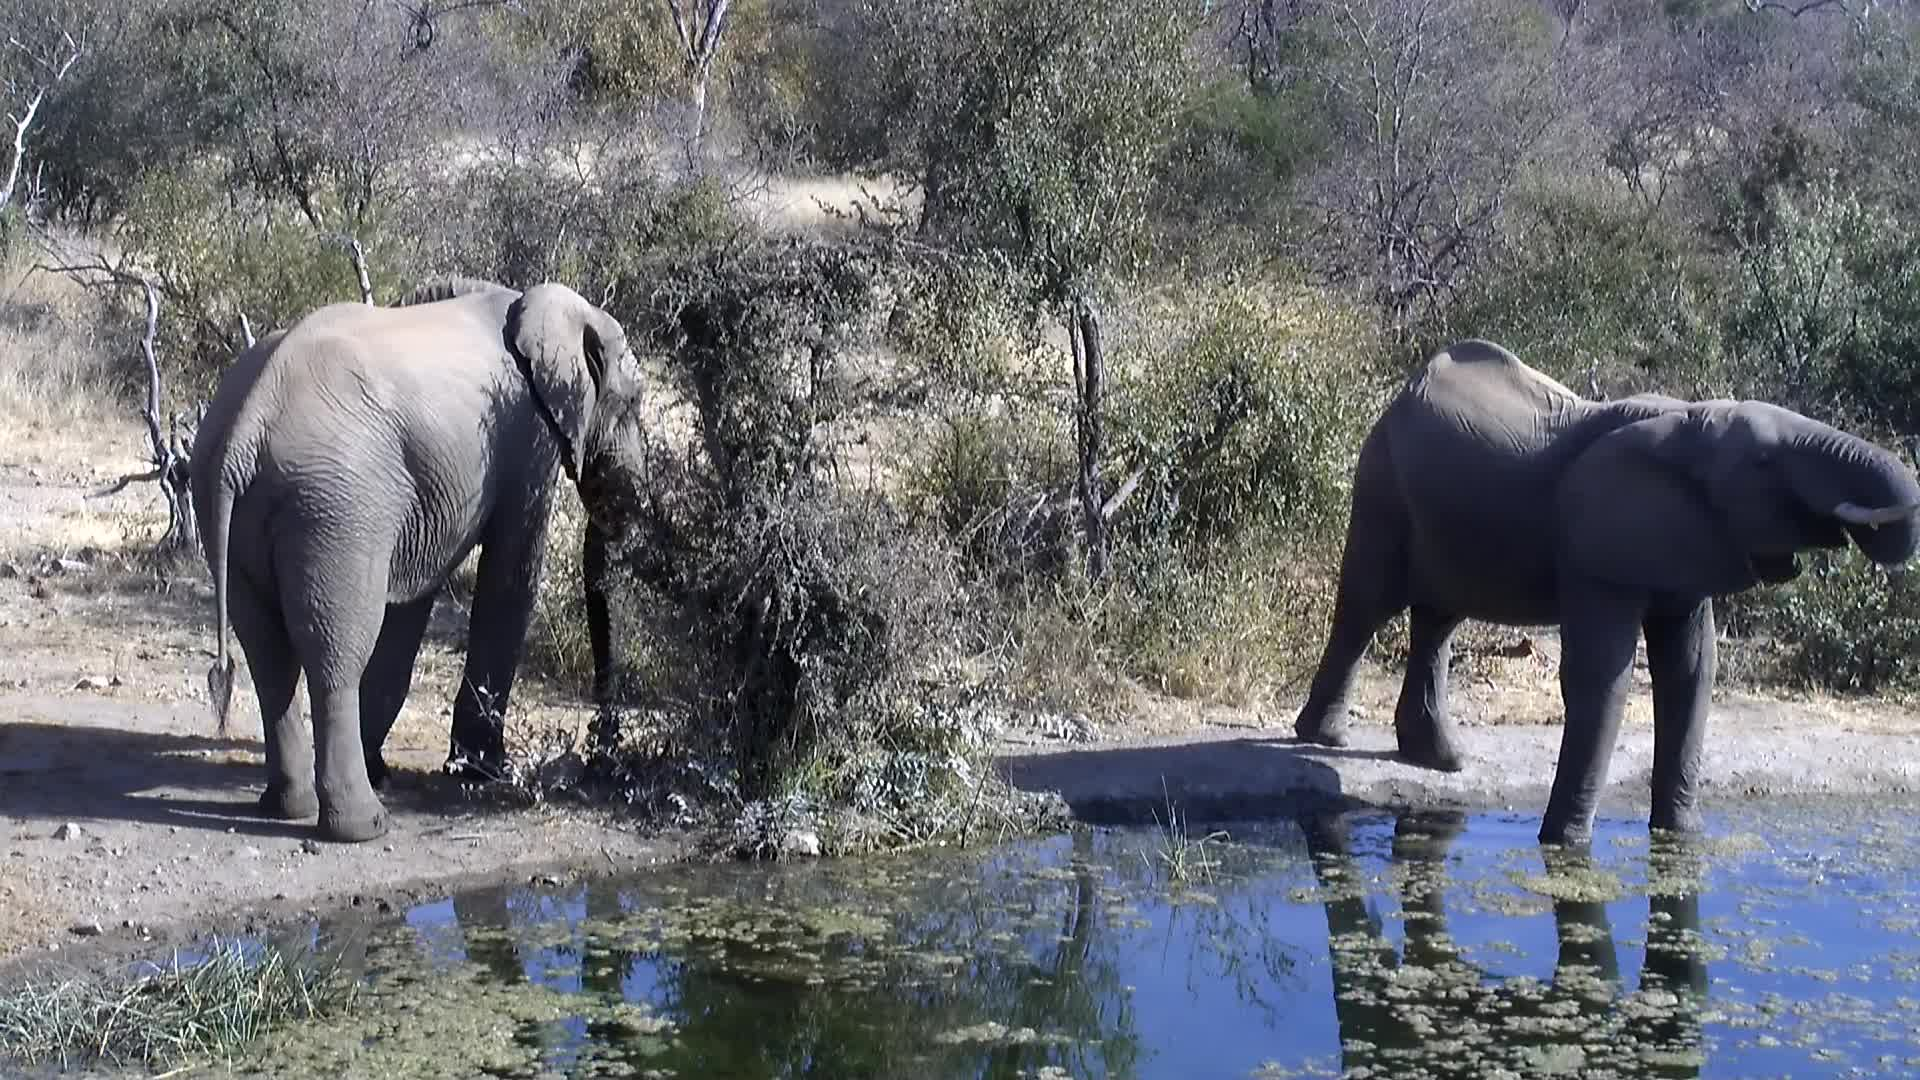 VIDEO: Elephant drinking at pan